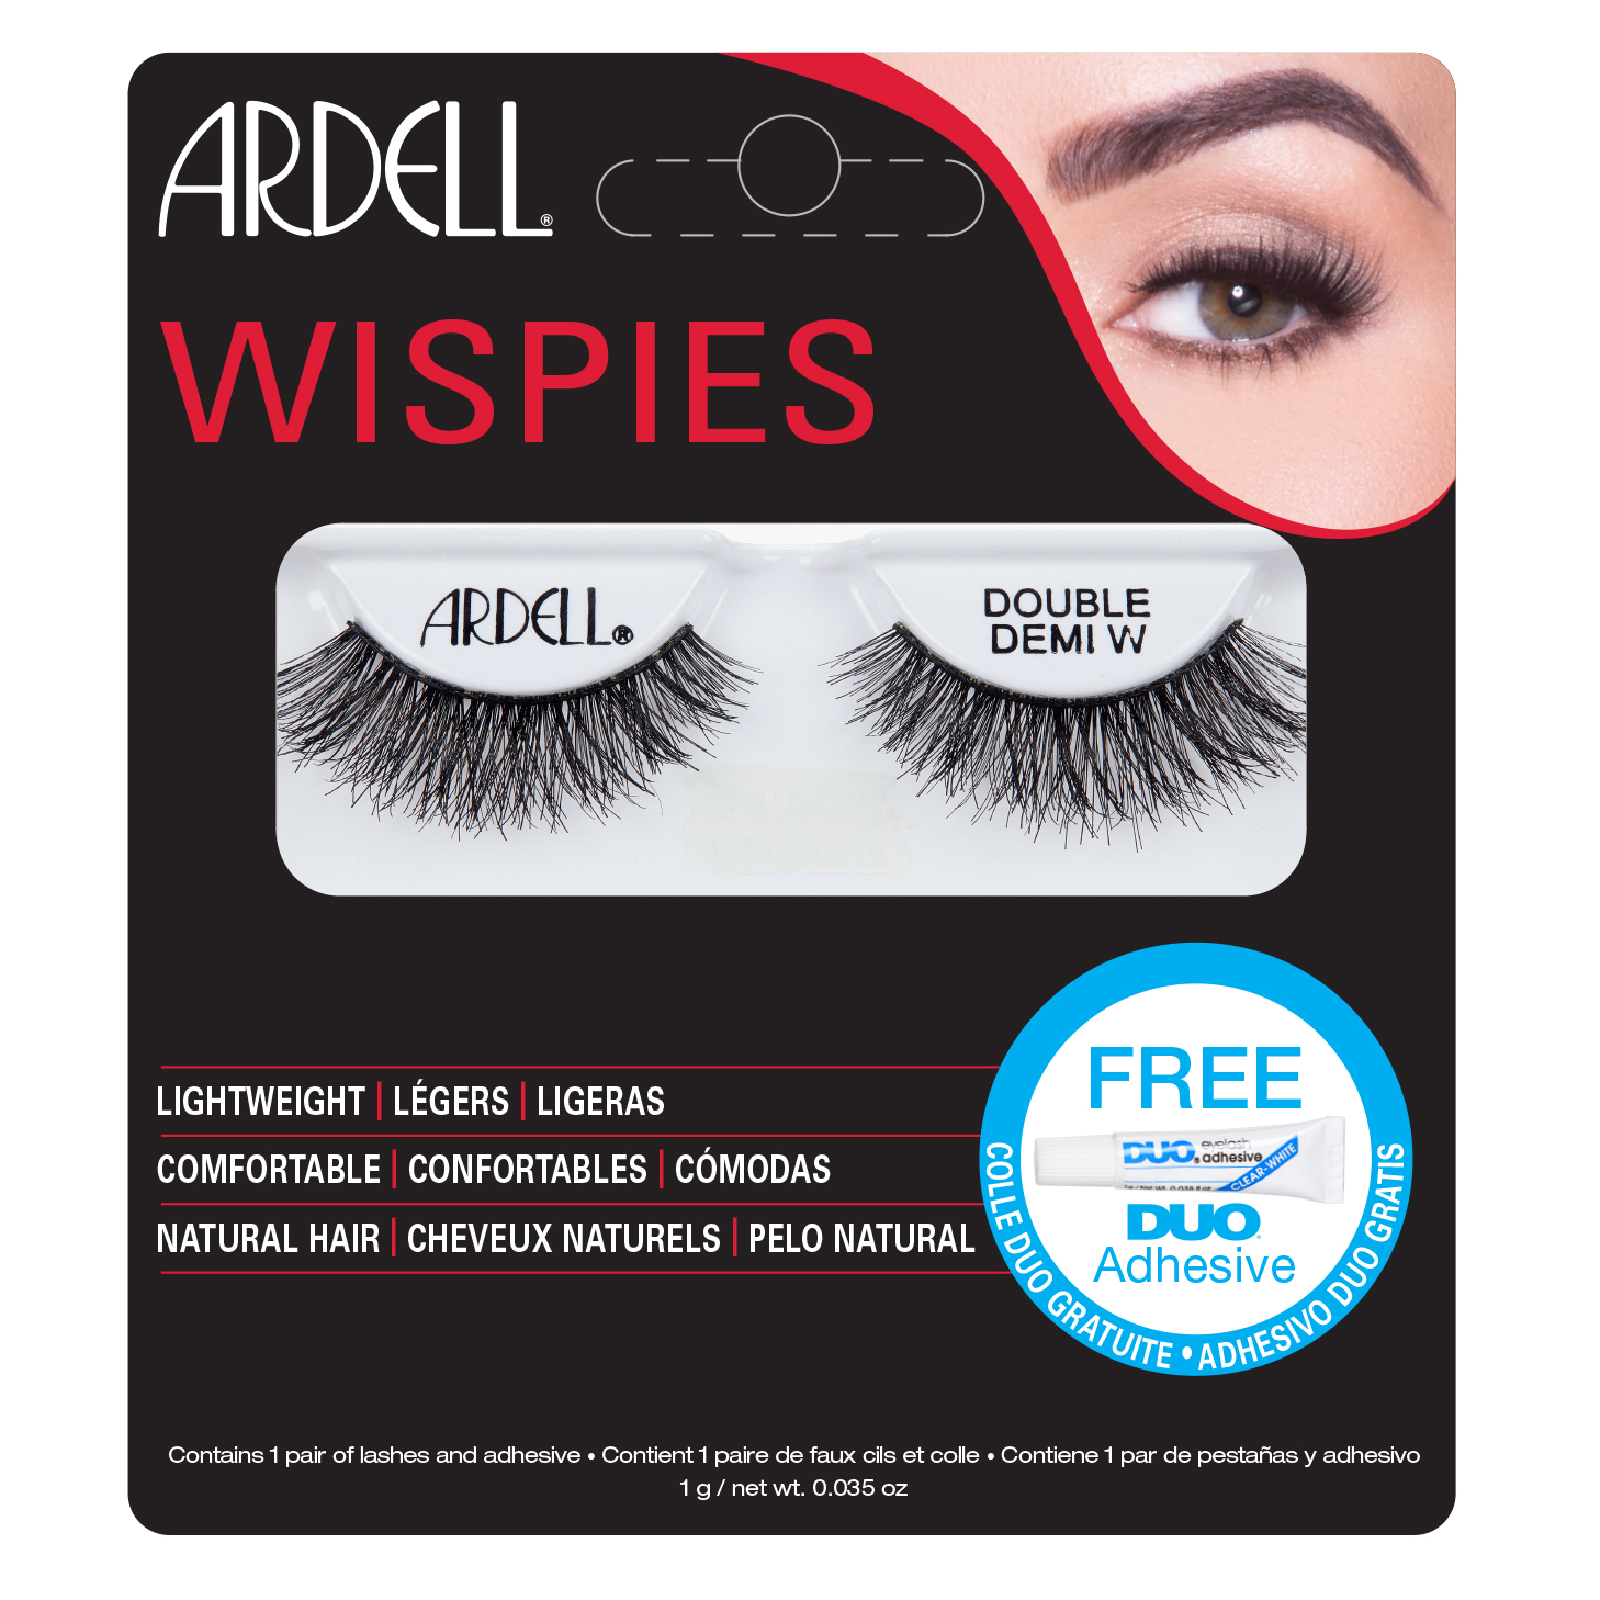 bcc4ae2342f Ardell Double Up Demi Wispies False Eyelashes - Black | Free Shipping |  Lookfantastic